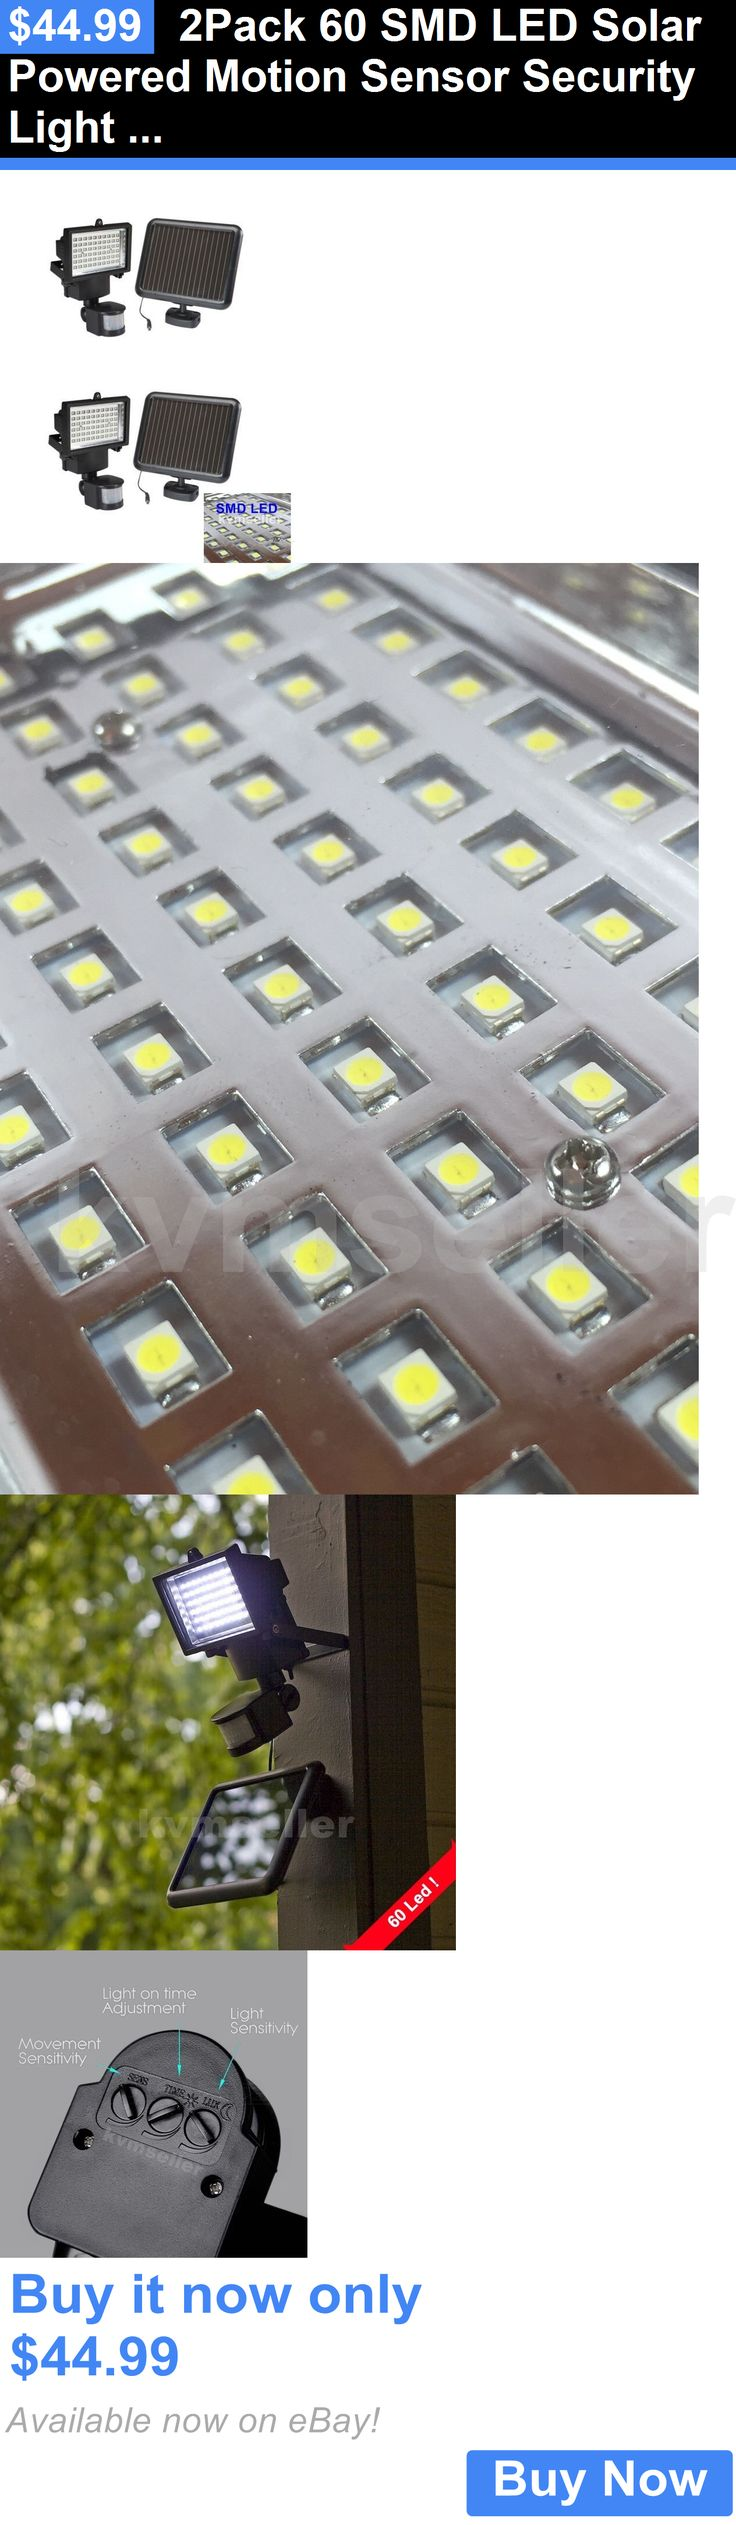 farm and garden: 2Pack 60 Smd Led Solar Powered Motion Sensor Security Light Flood Light Lamp BUY IT NOW ONLY: $44.99